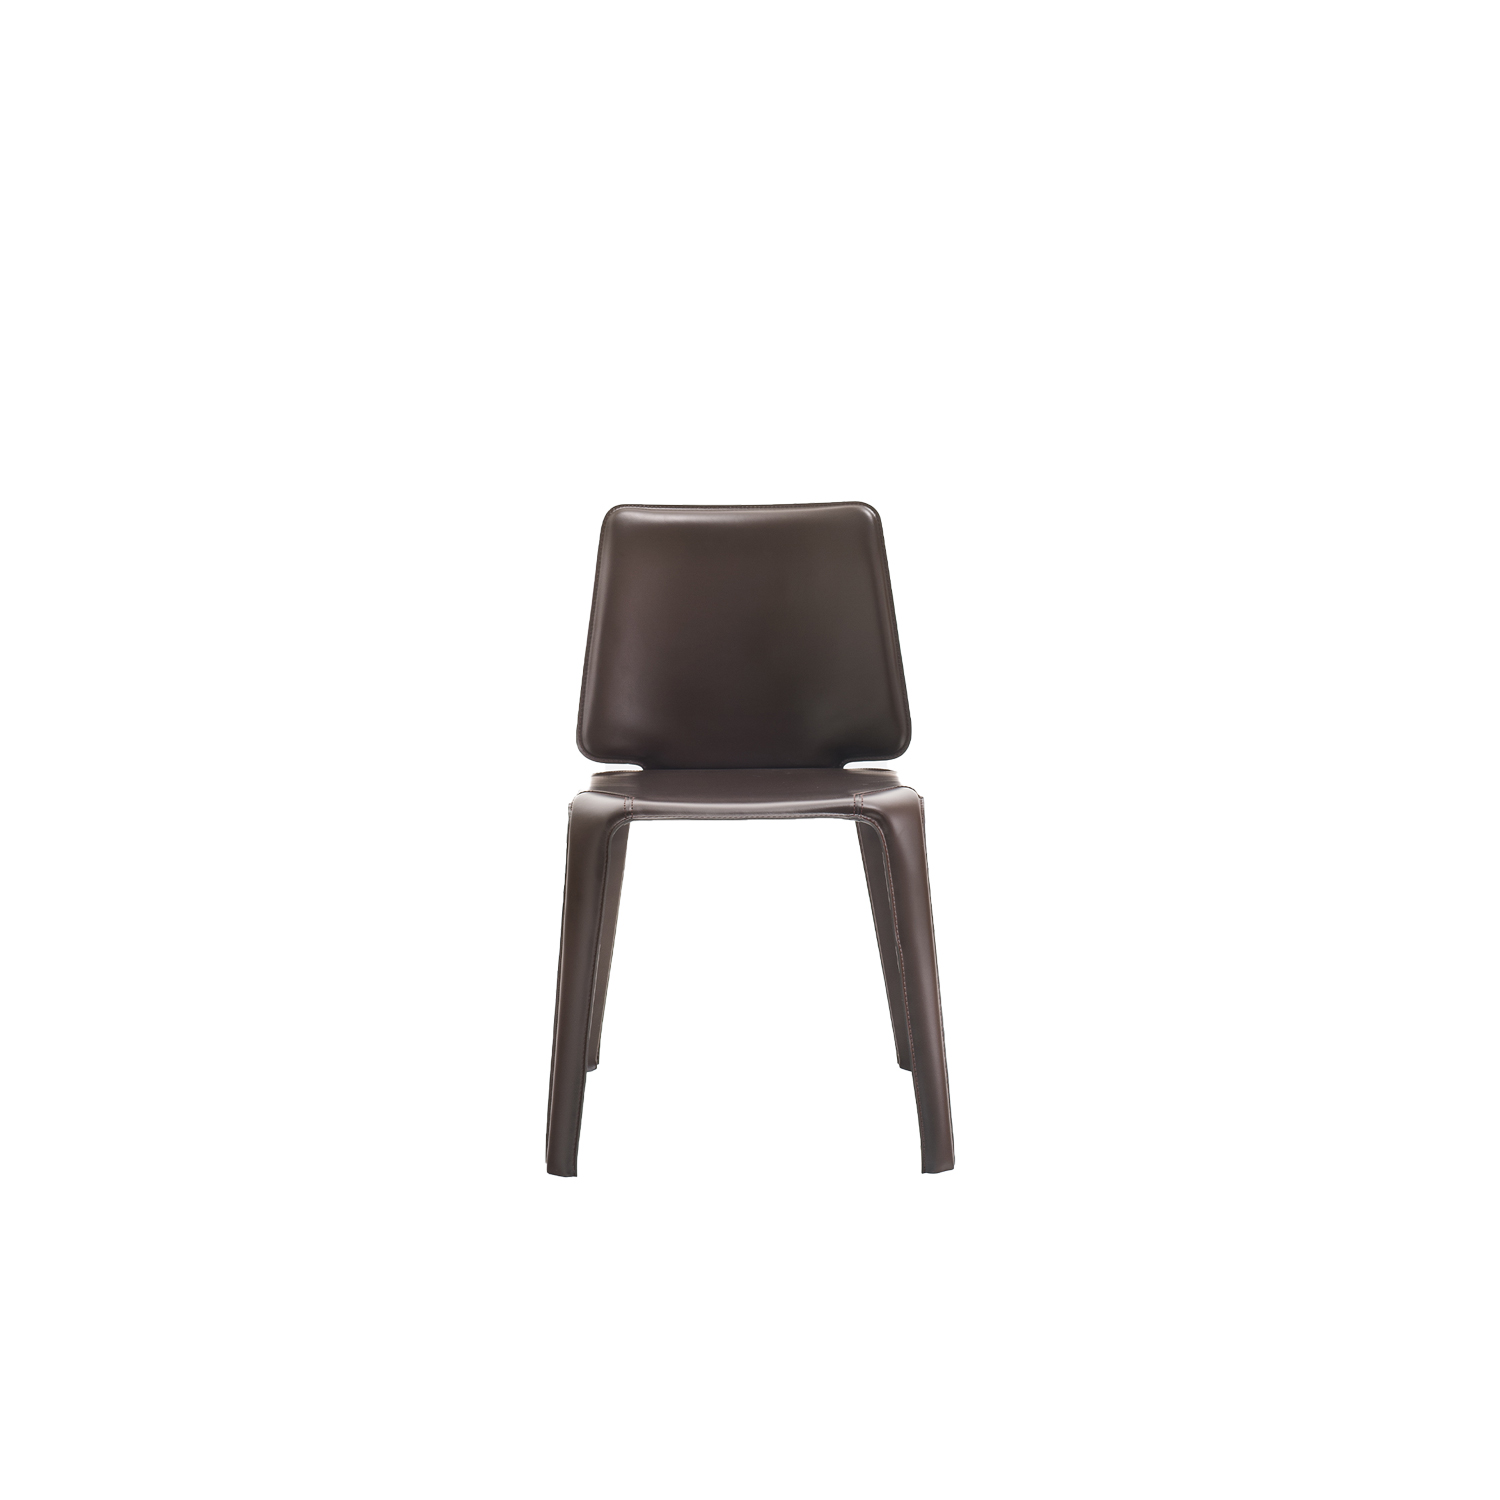 Mood Chair - Mood is a premium refined chair with soft sleek lines. Chair with steel structure covered by genuine leather. | Matter of Stuff